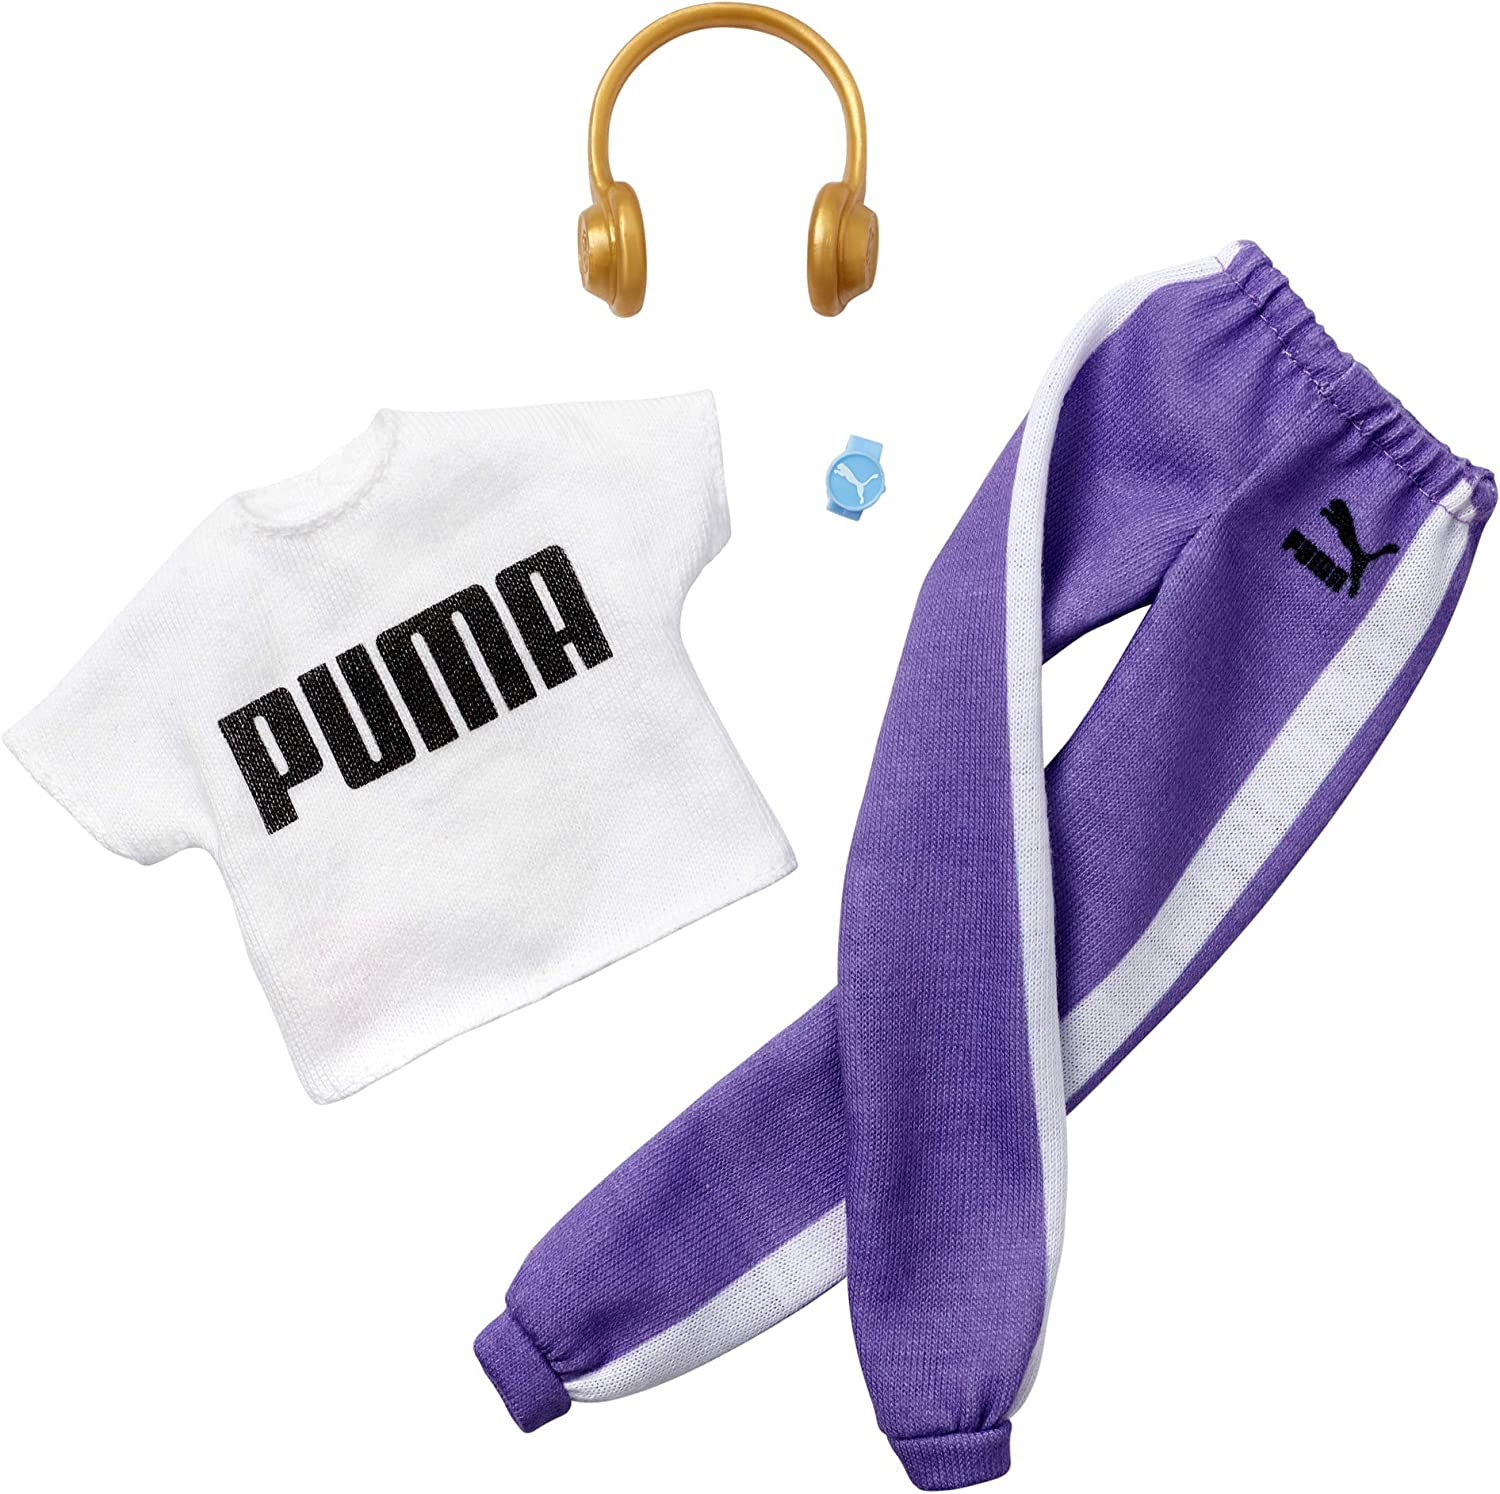 Barbie Clothes Puma Branded Outfit Doll, White Top and Purple Joggers with Headphones and Watch, Gift for 3 to 8 Year Olds